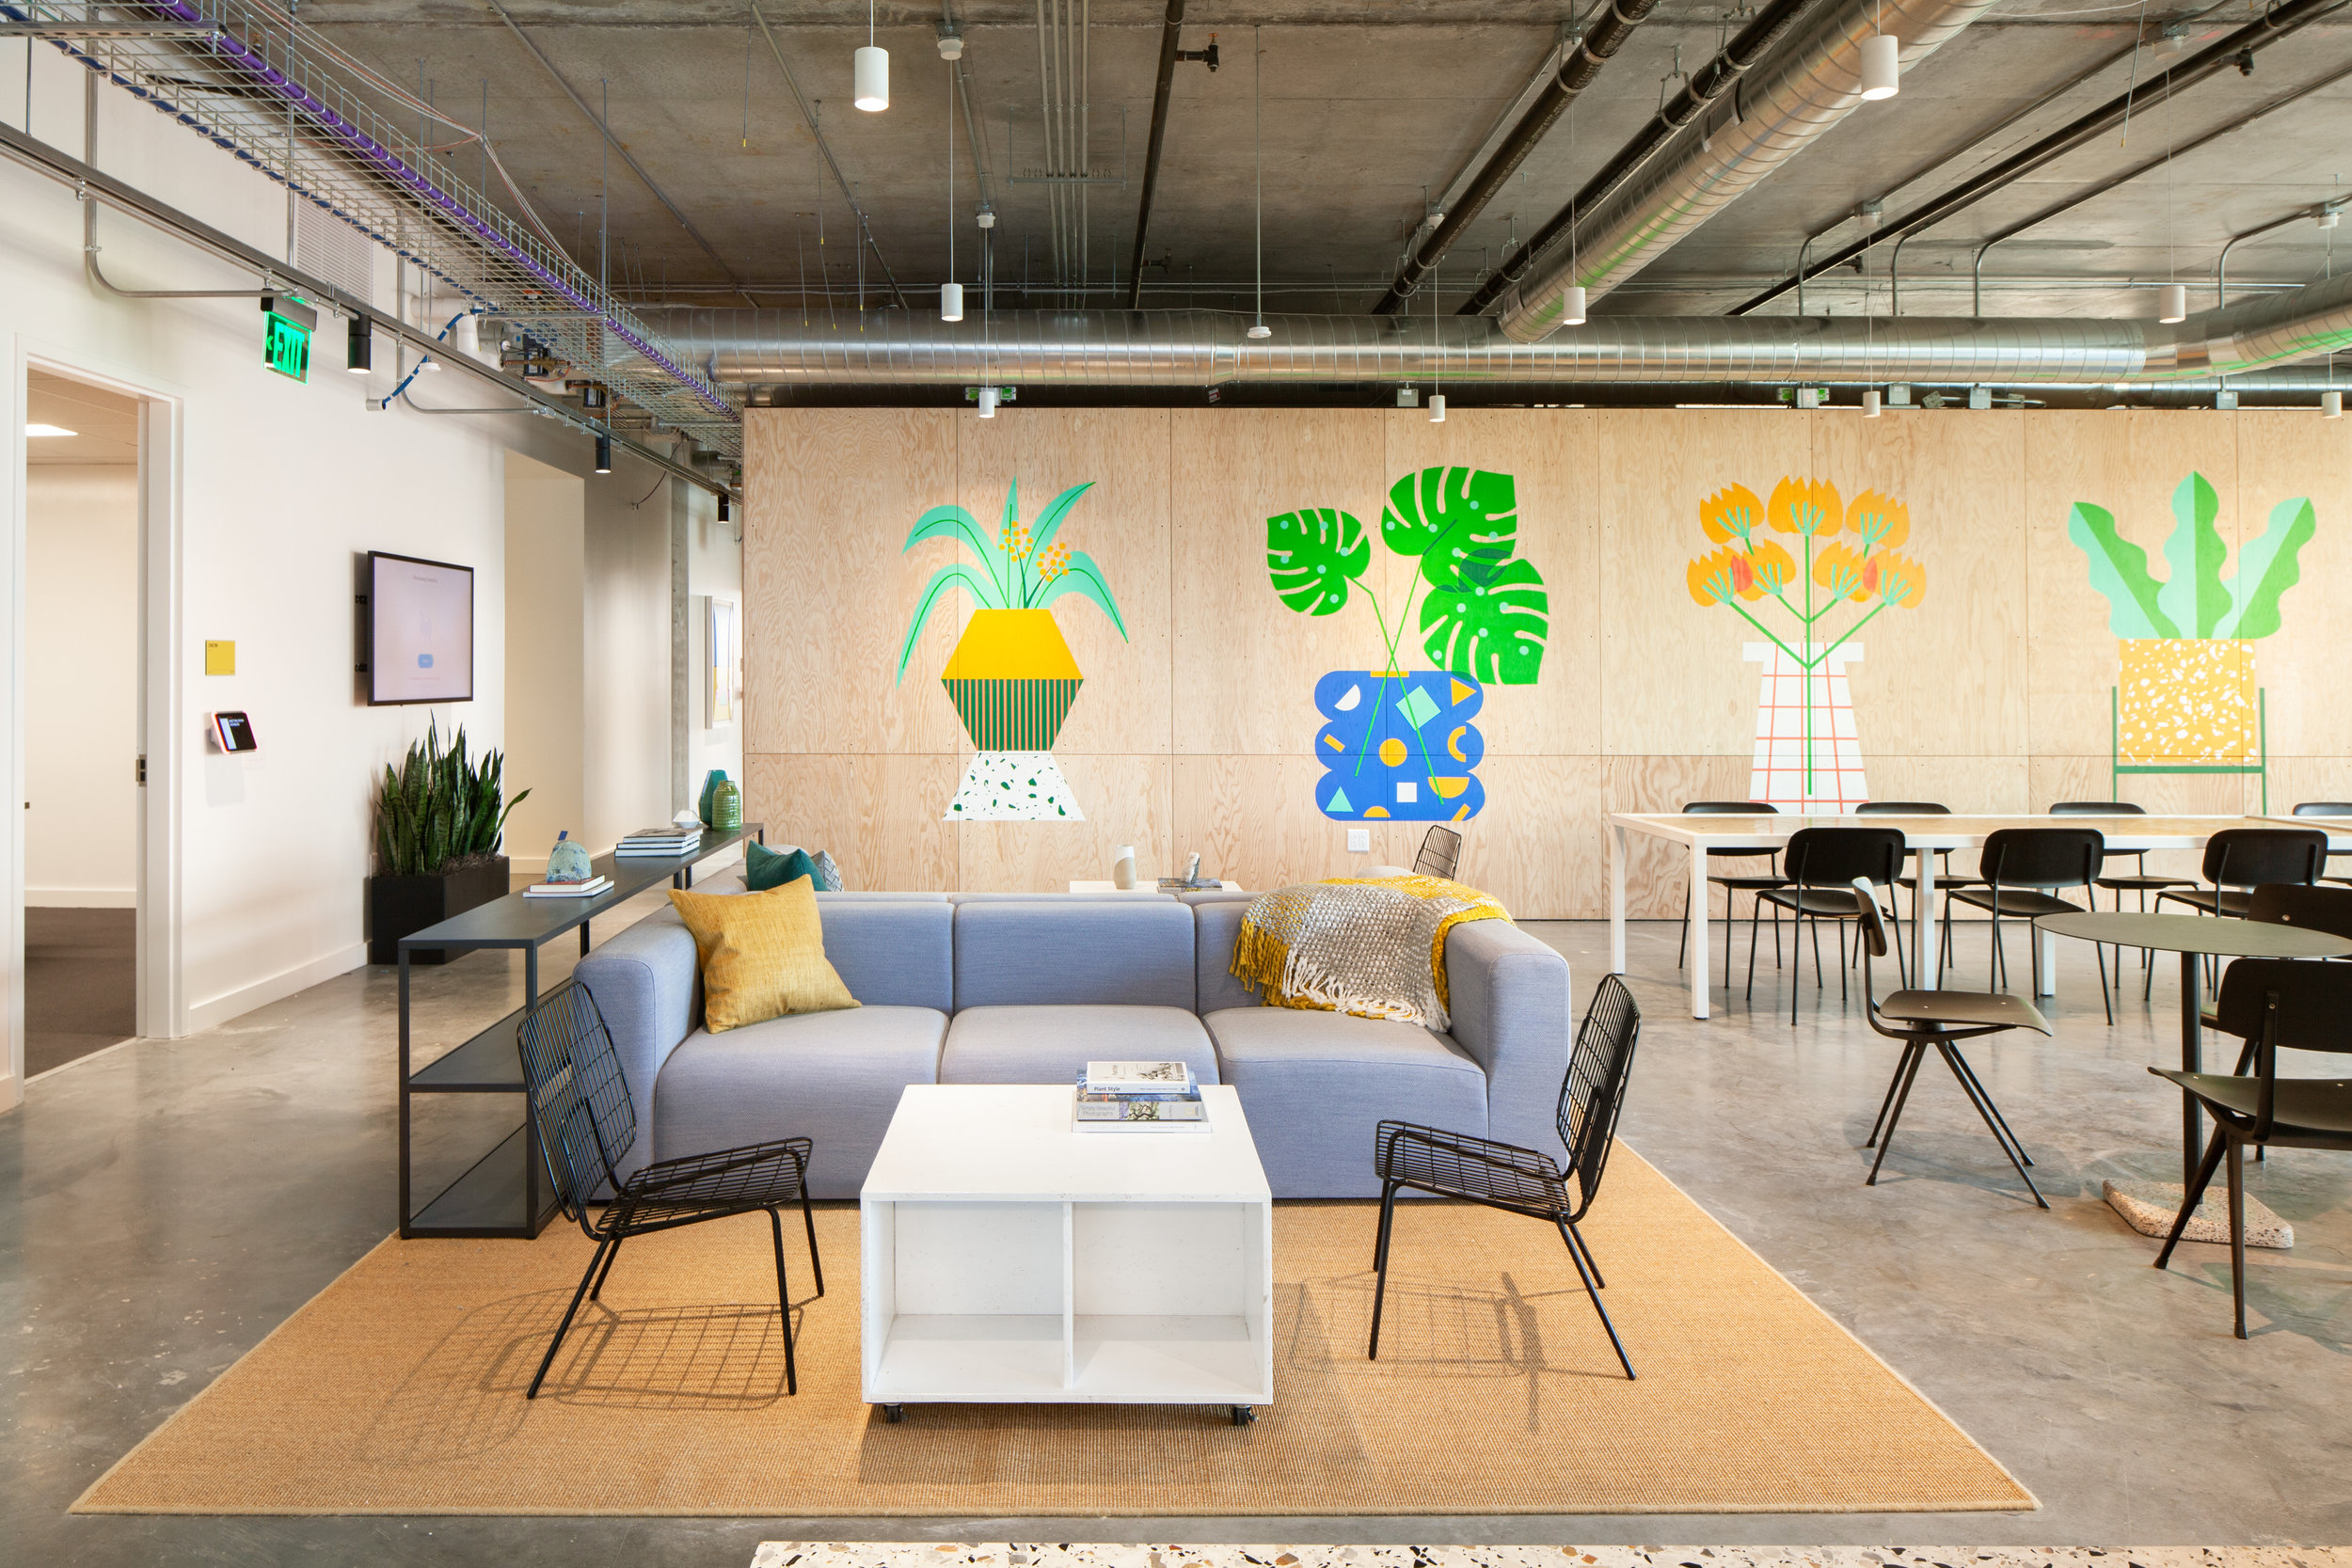 Office-commercial-mural-san-francisco-wework-facebook-wall-and-wall-mural-company.jpg